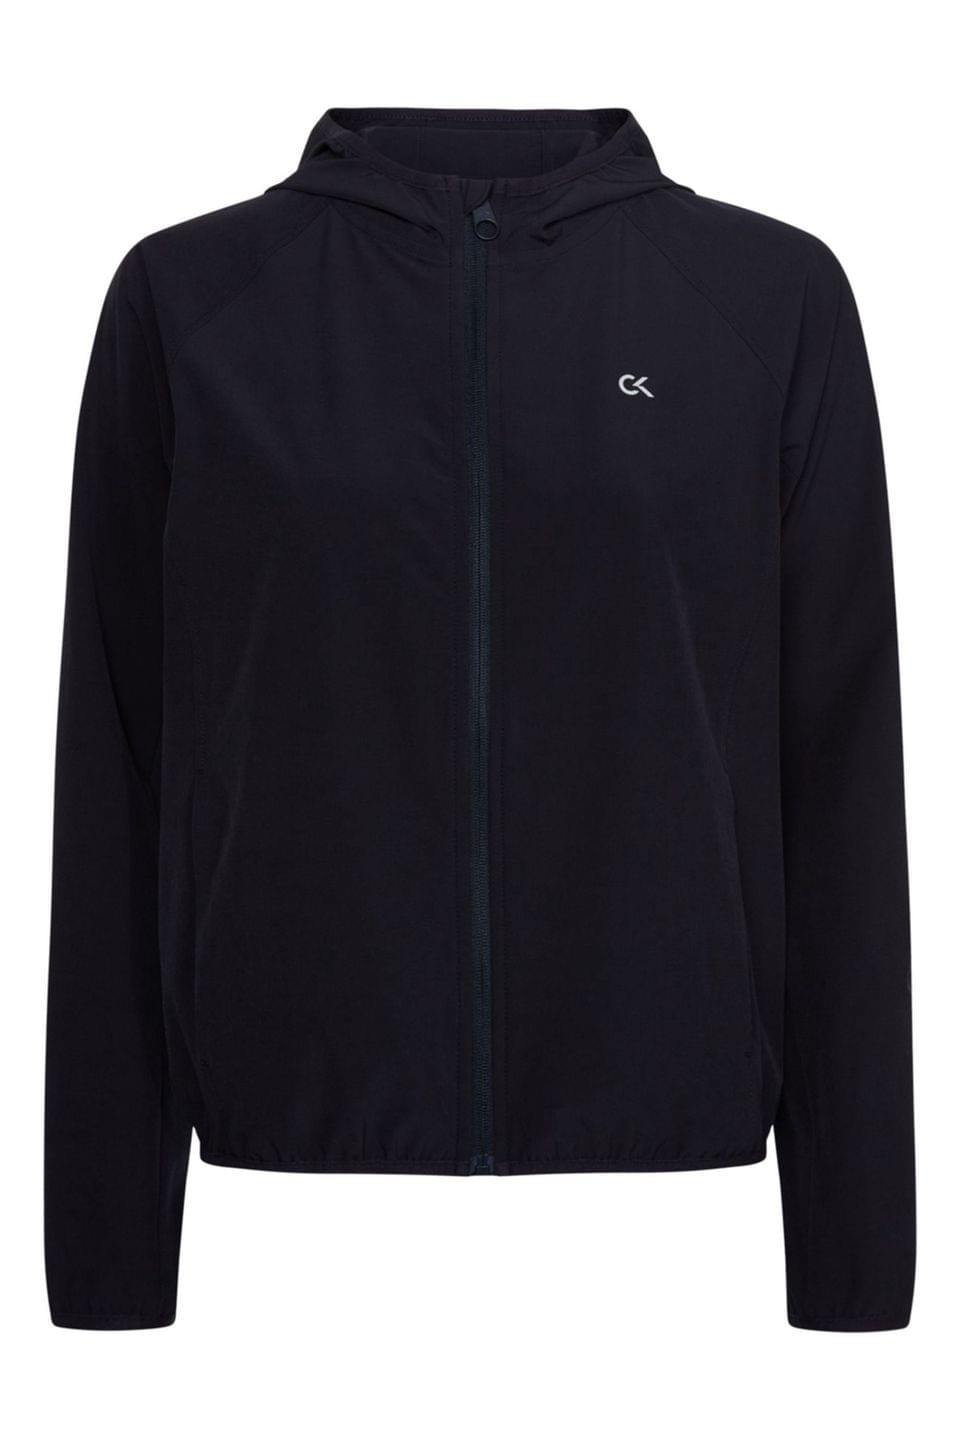 Women's Calvin Klein Performance Blue Windbreaker Jacket